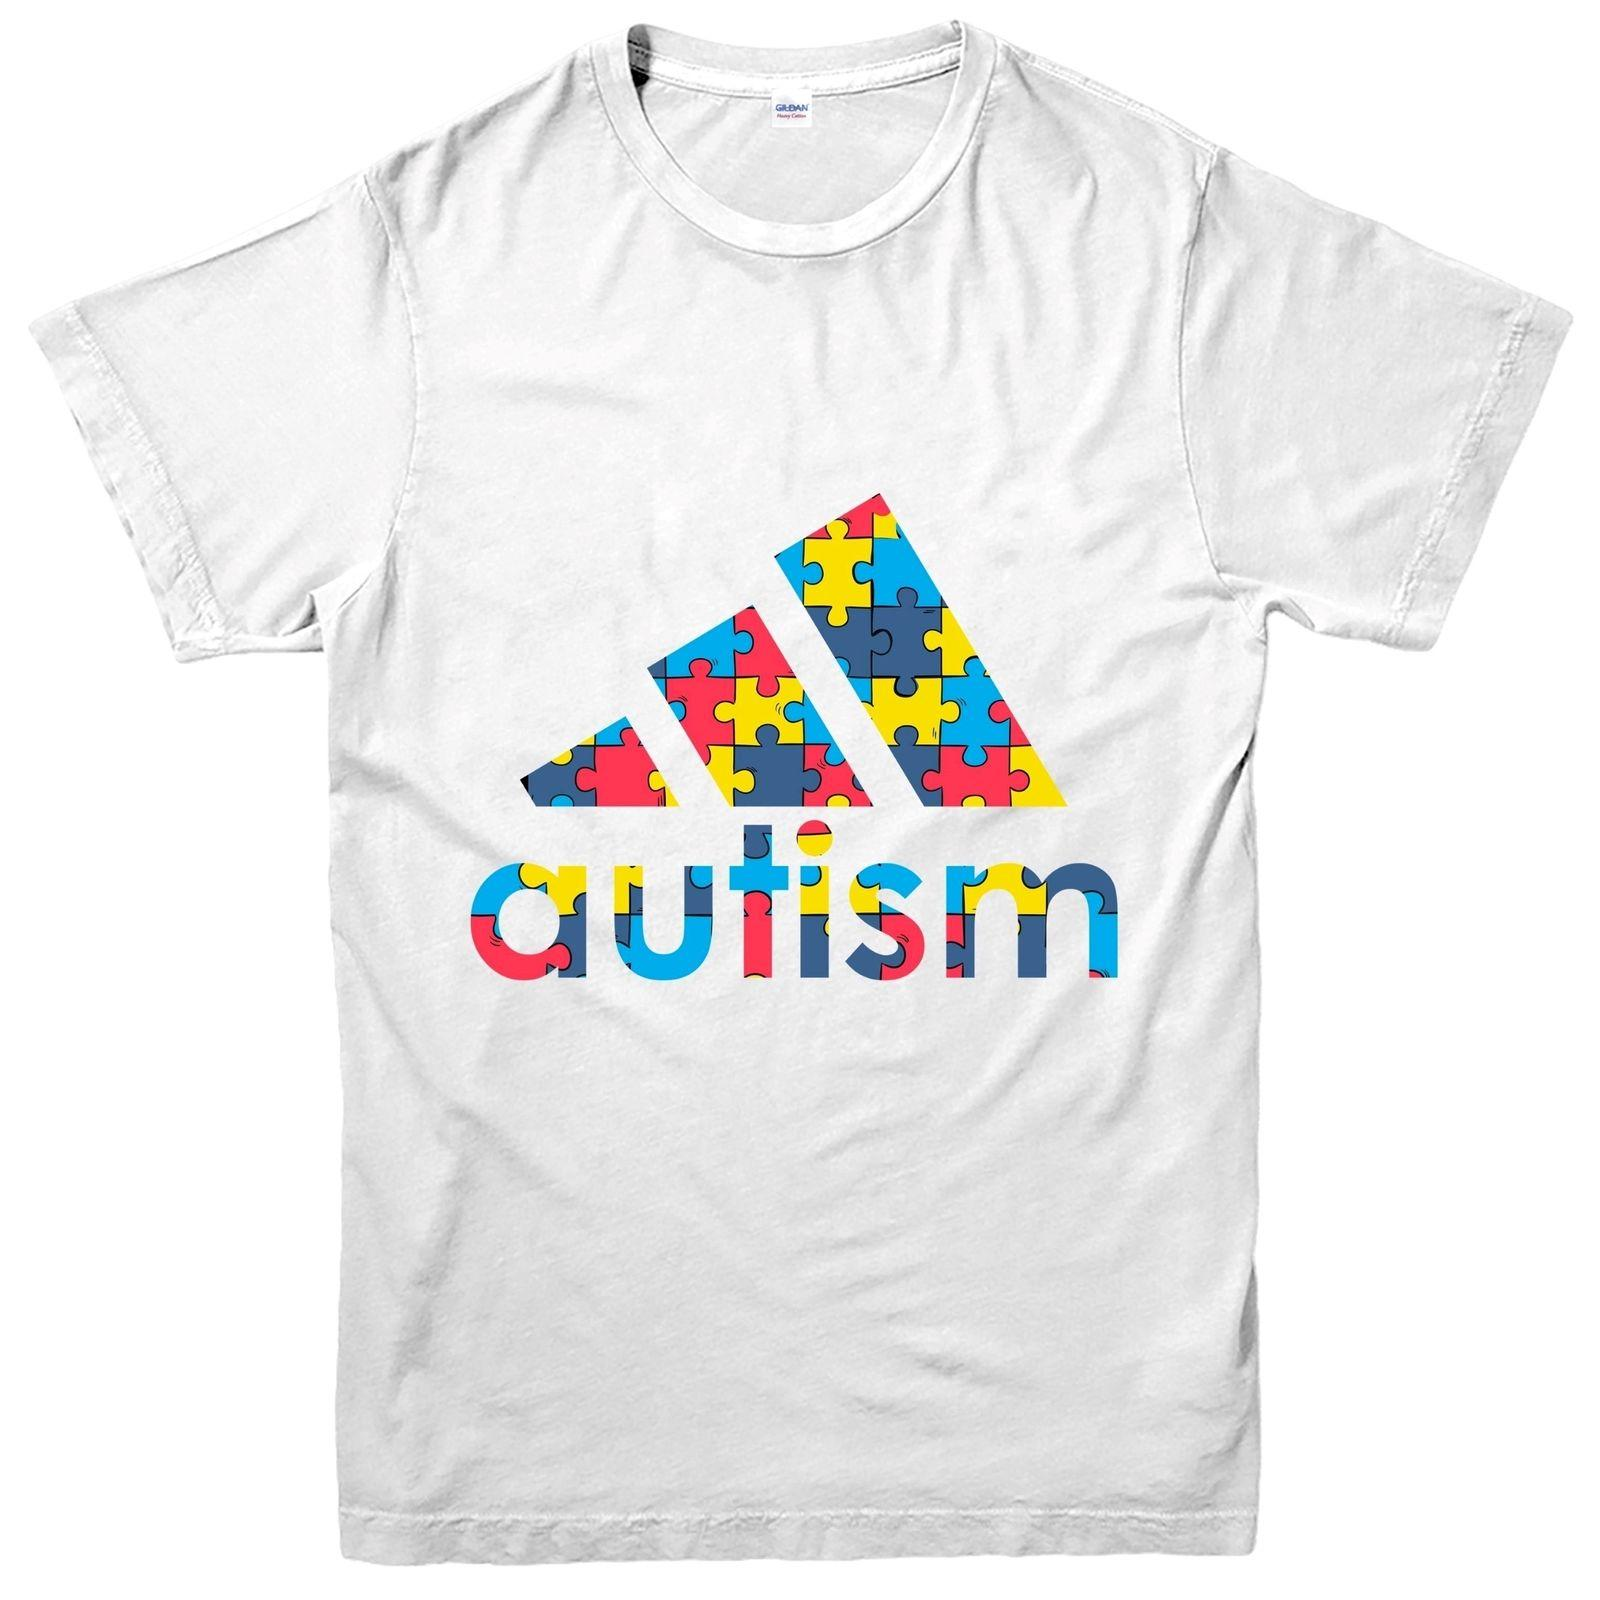 996549fe1e5 Autism Awareness T Shirt, Autism Colorfull Puzzle Piece Design Gift Tee Top  Funny Unisex Casual Awesome T Shirt Designs Tea Shirts From Tshirtkidd, ...